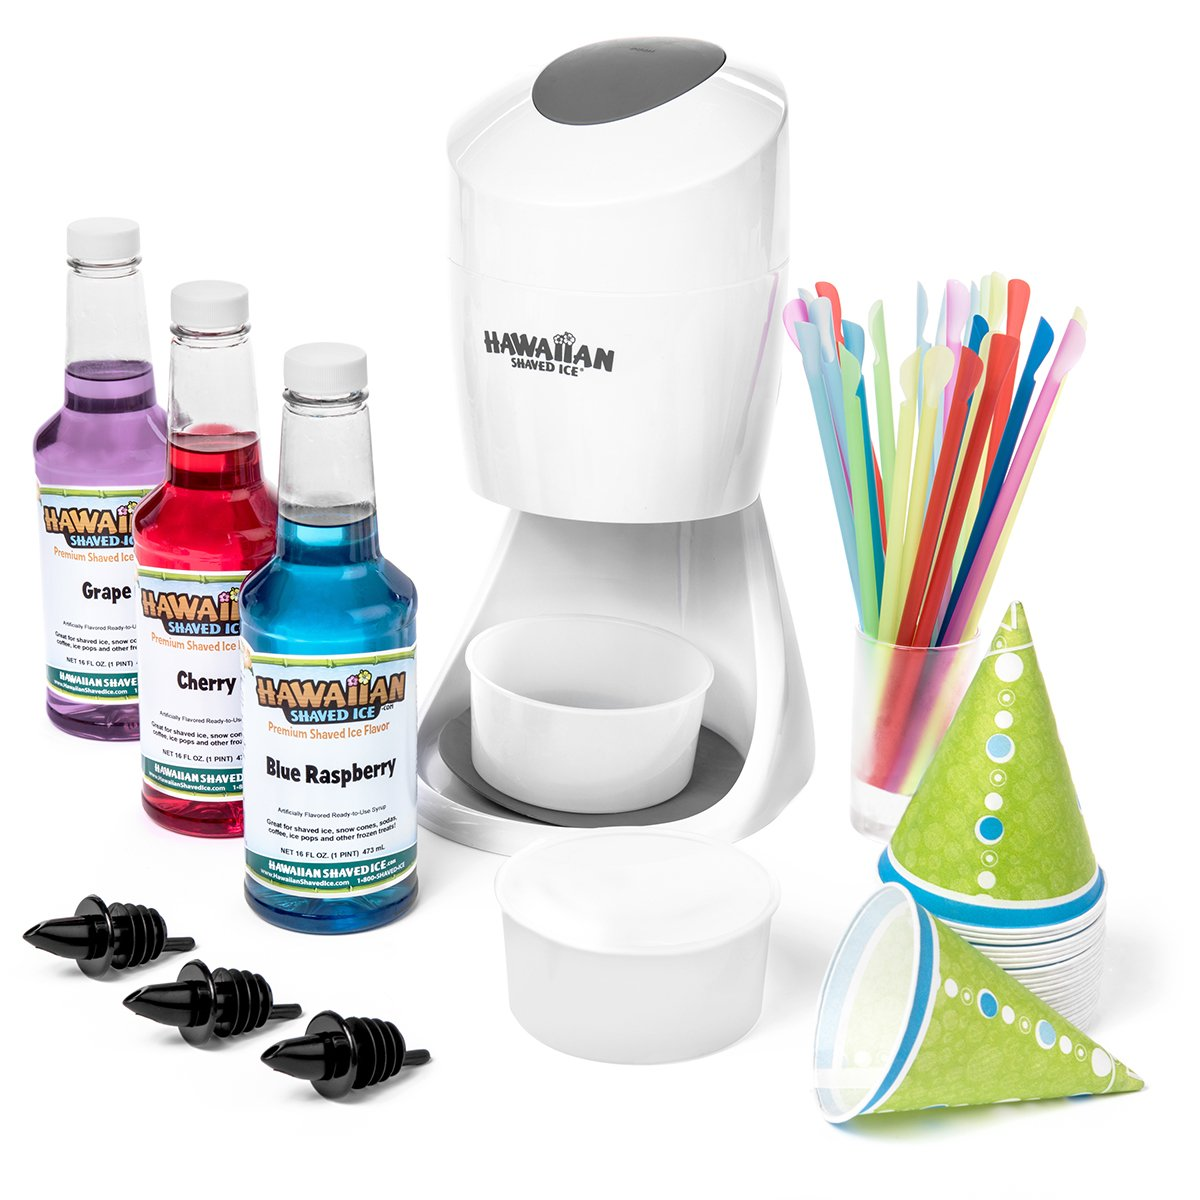 Hawaiian Shaved Ice S900A Shaved Ice and Snow Cone Machine with 3 Flavor Syrup Pack and Accessories by Hawaiian Shaved Ice